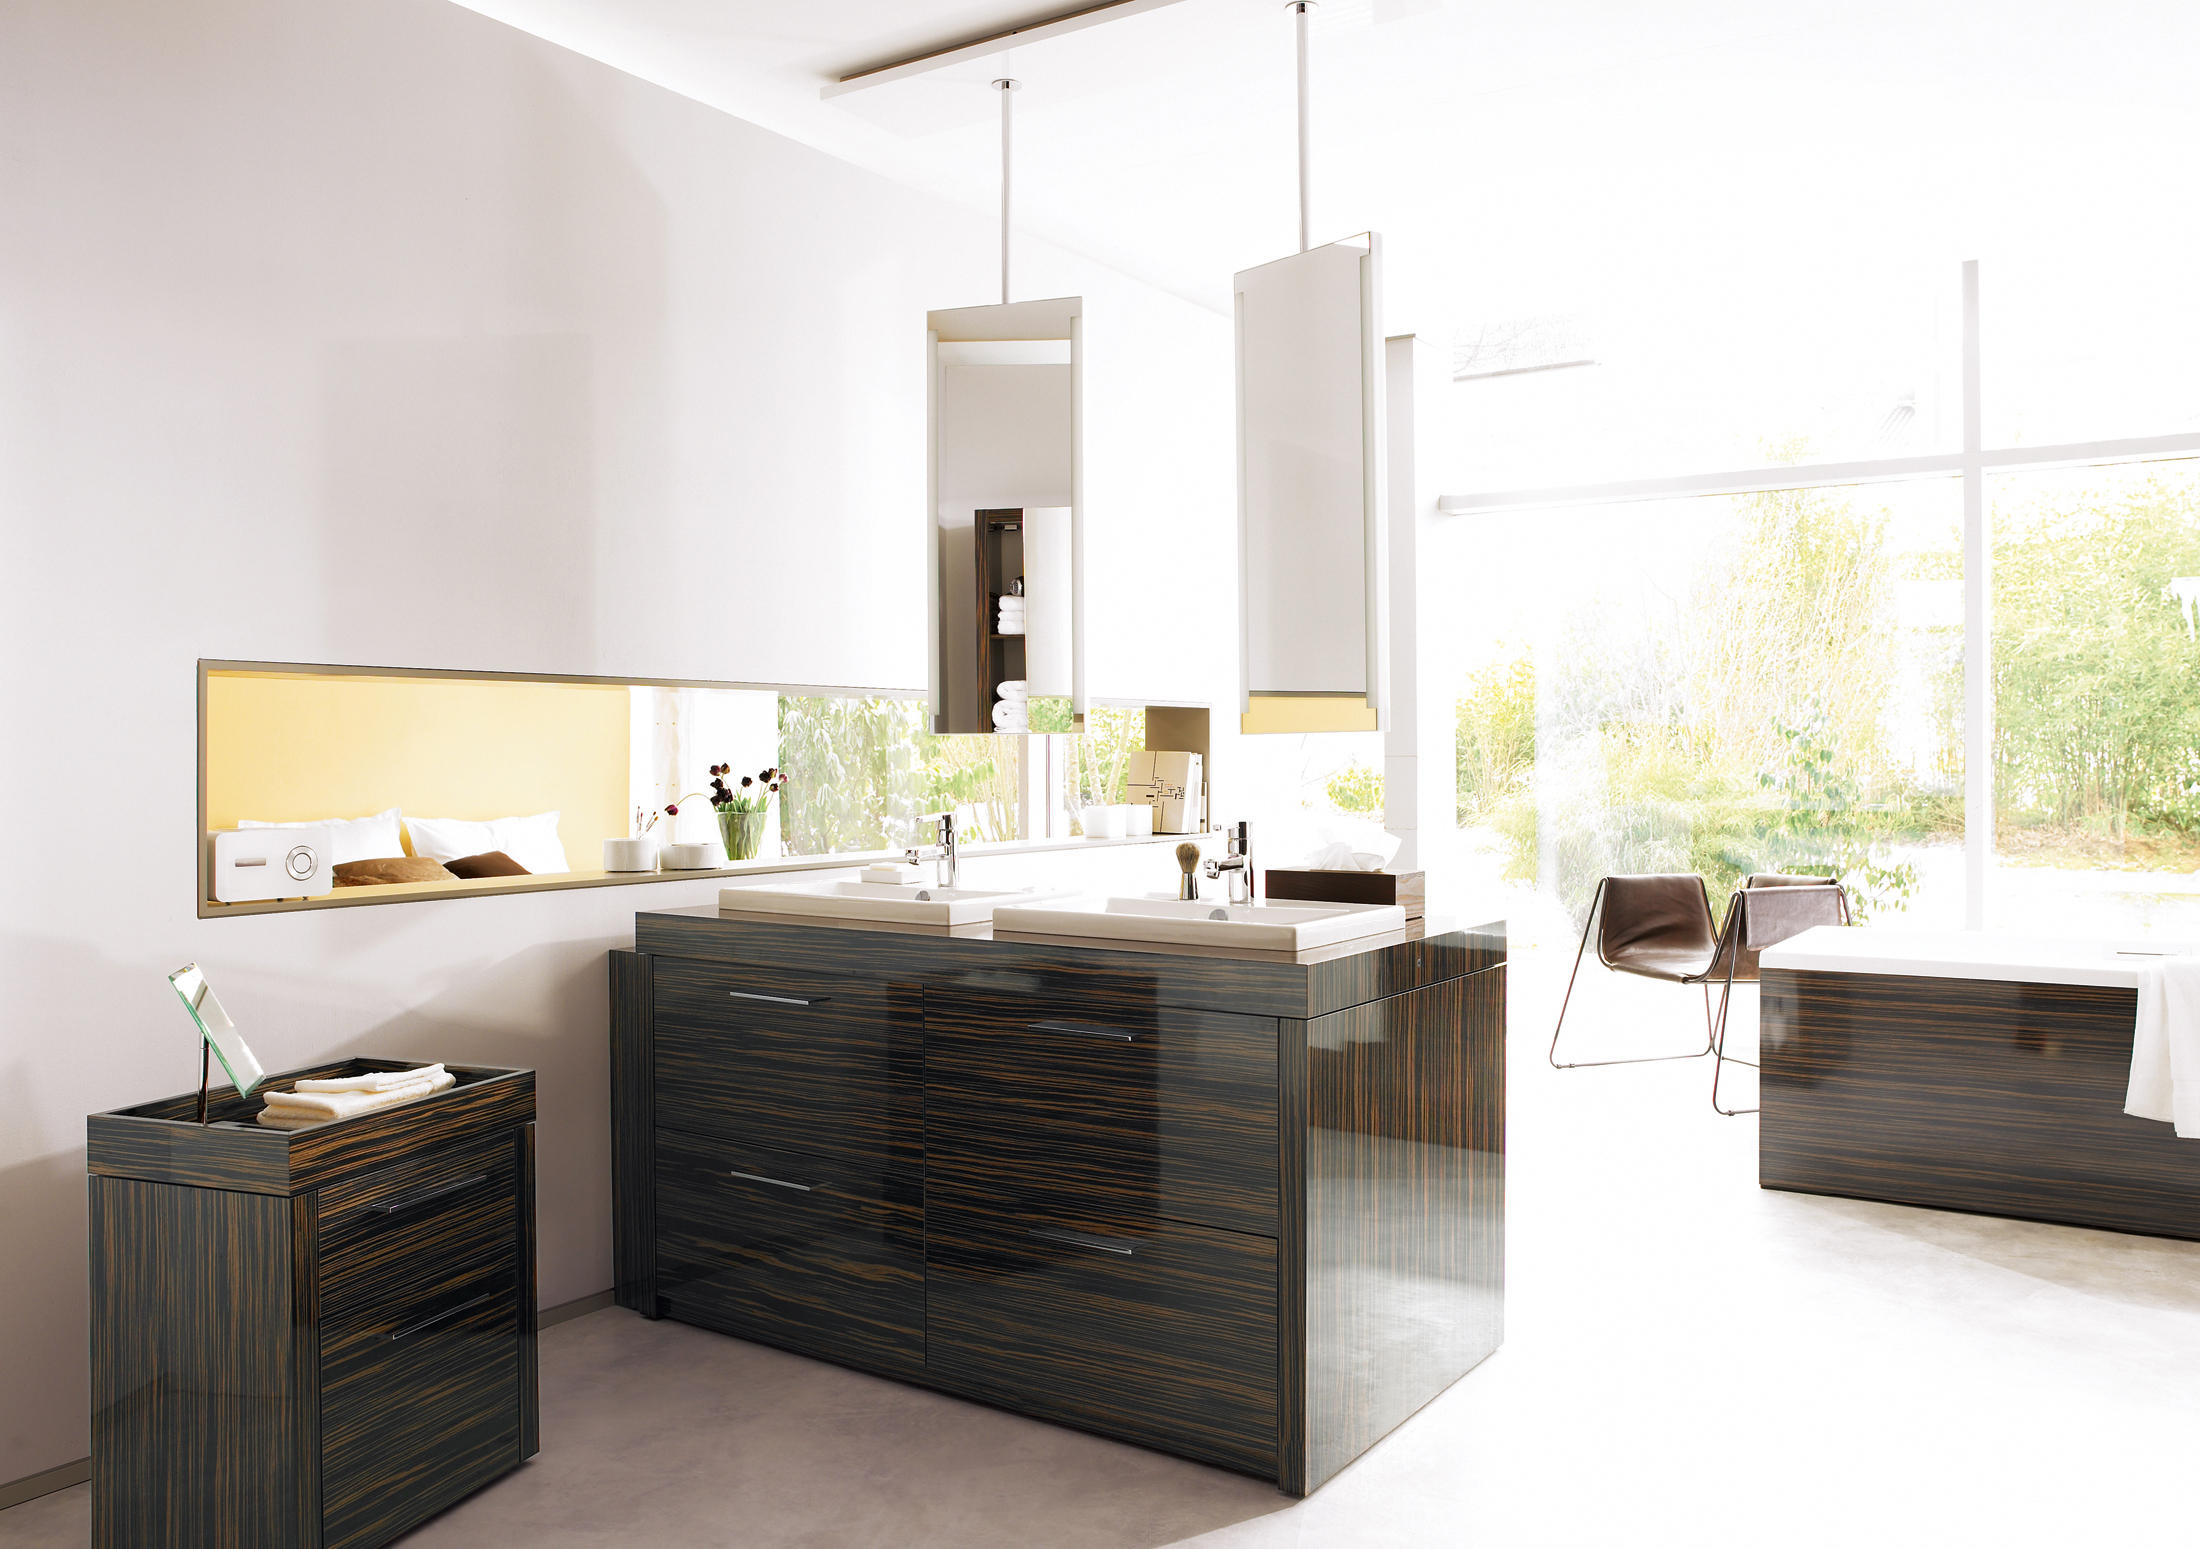 2ND FLOOR - WASHBASIN - Wash basins from DURAVIT | Architonic